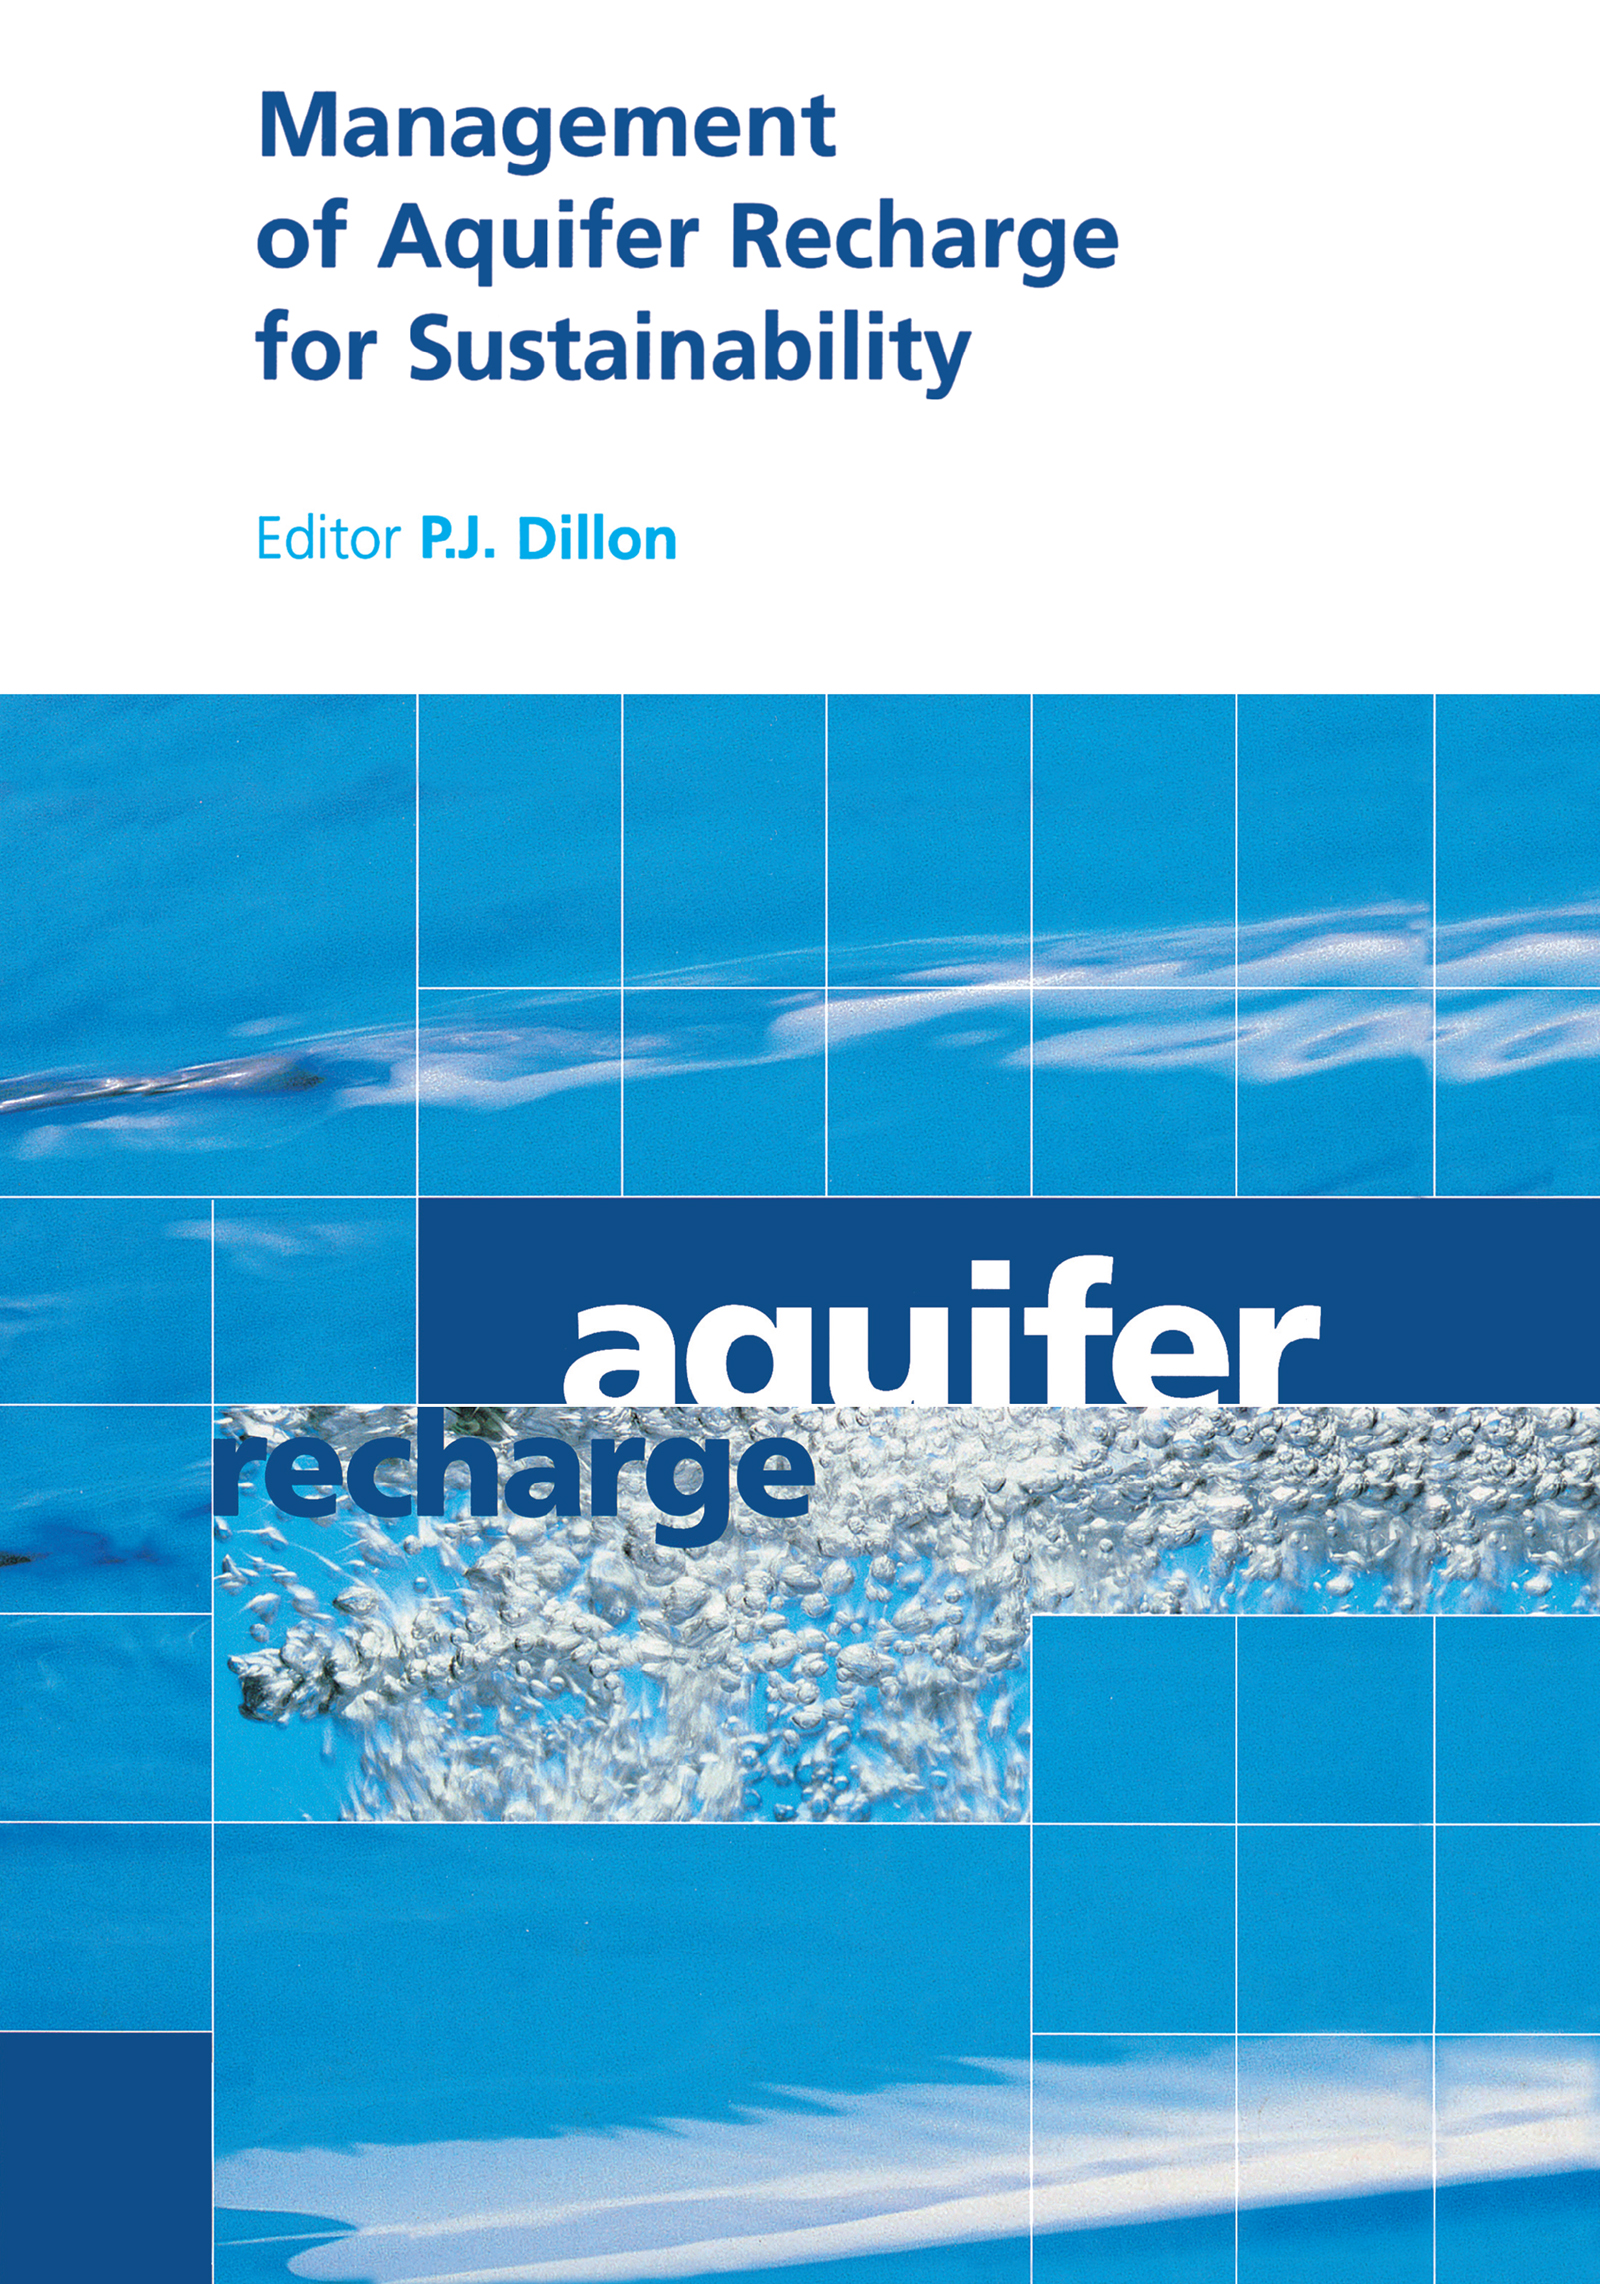 Management of Aquifer Recharge for Sustainability